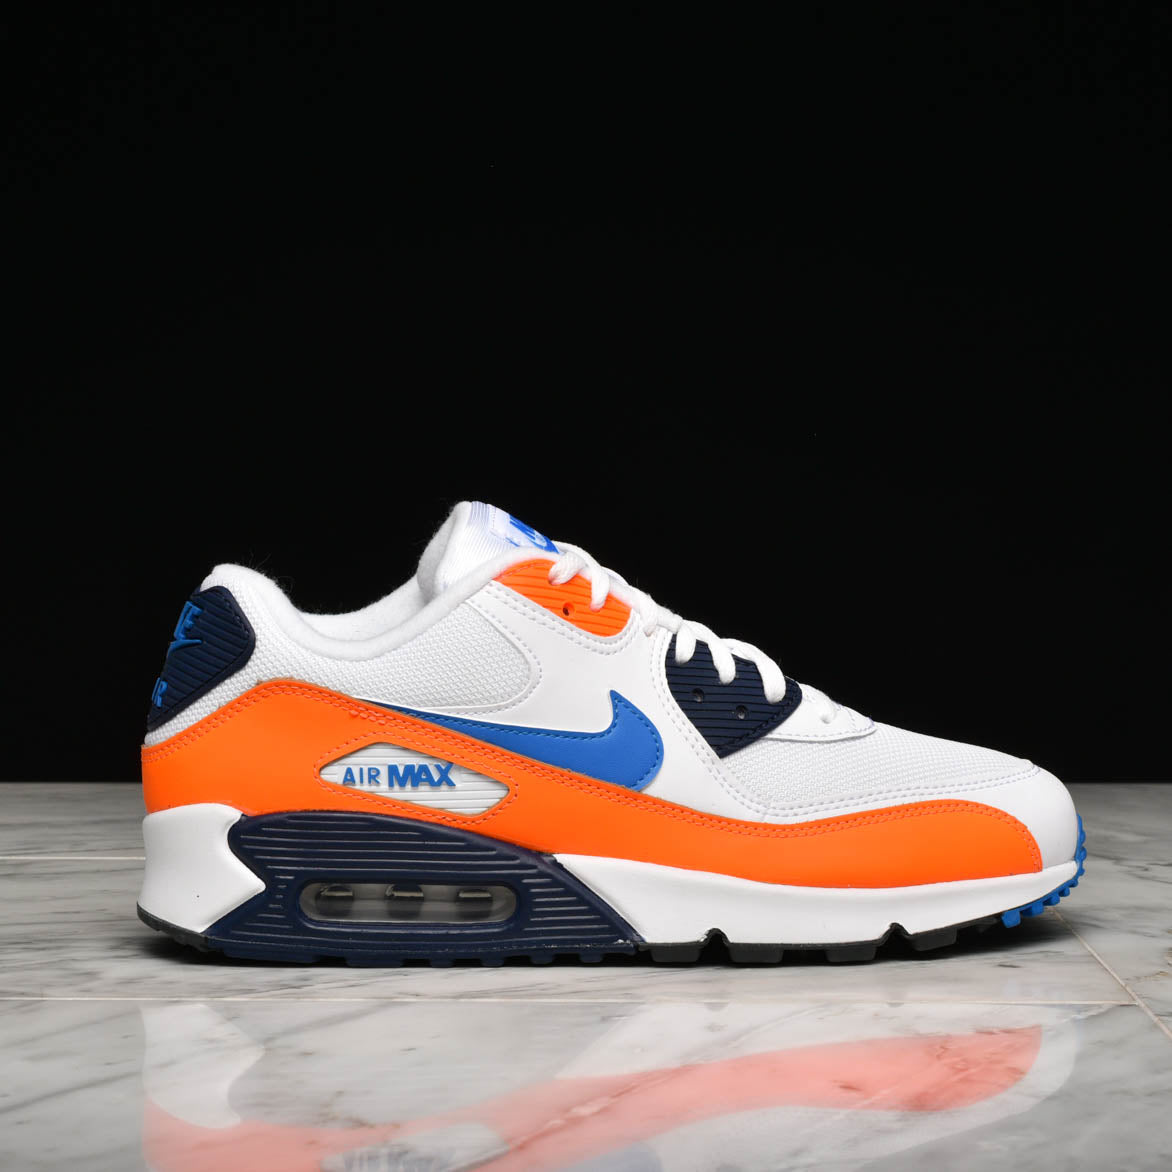 a7f7f35b5c AIR MAX 90 ESSENTIAL - WHITE / PHOTO BLUE / TOTAL ORANGE |  lapstoneandhammer.com